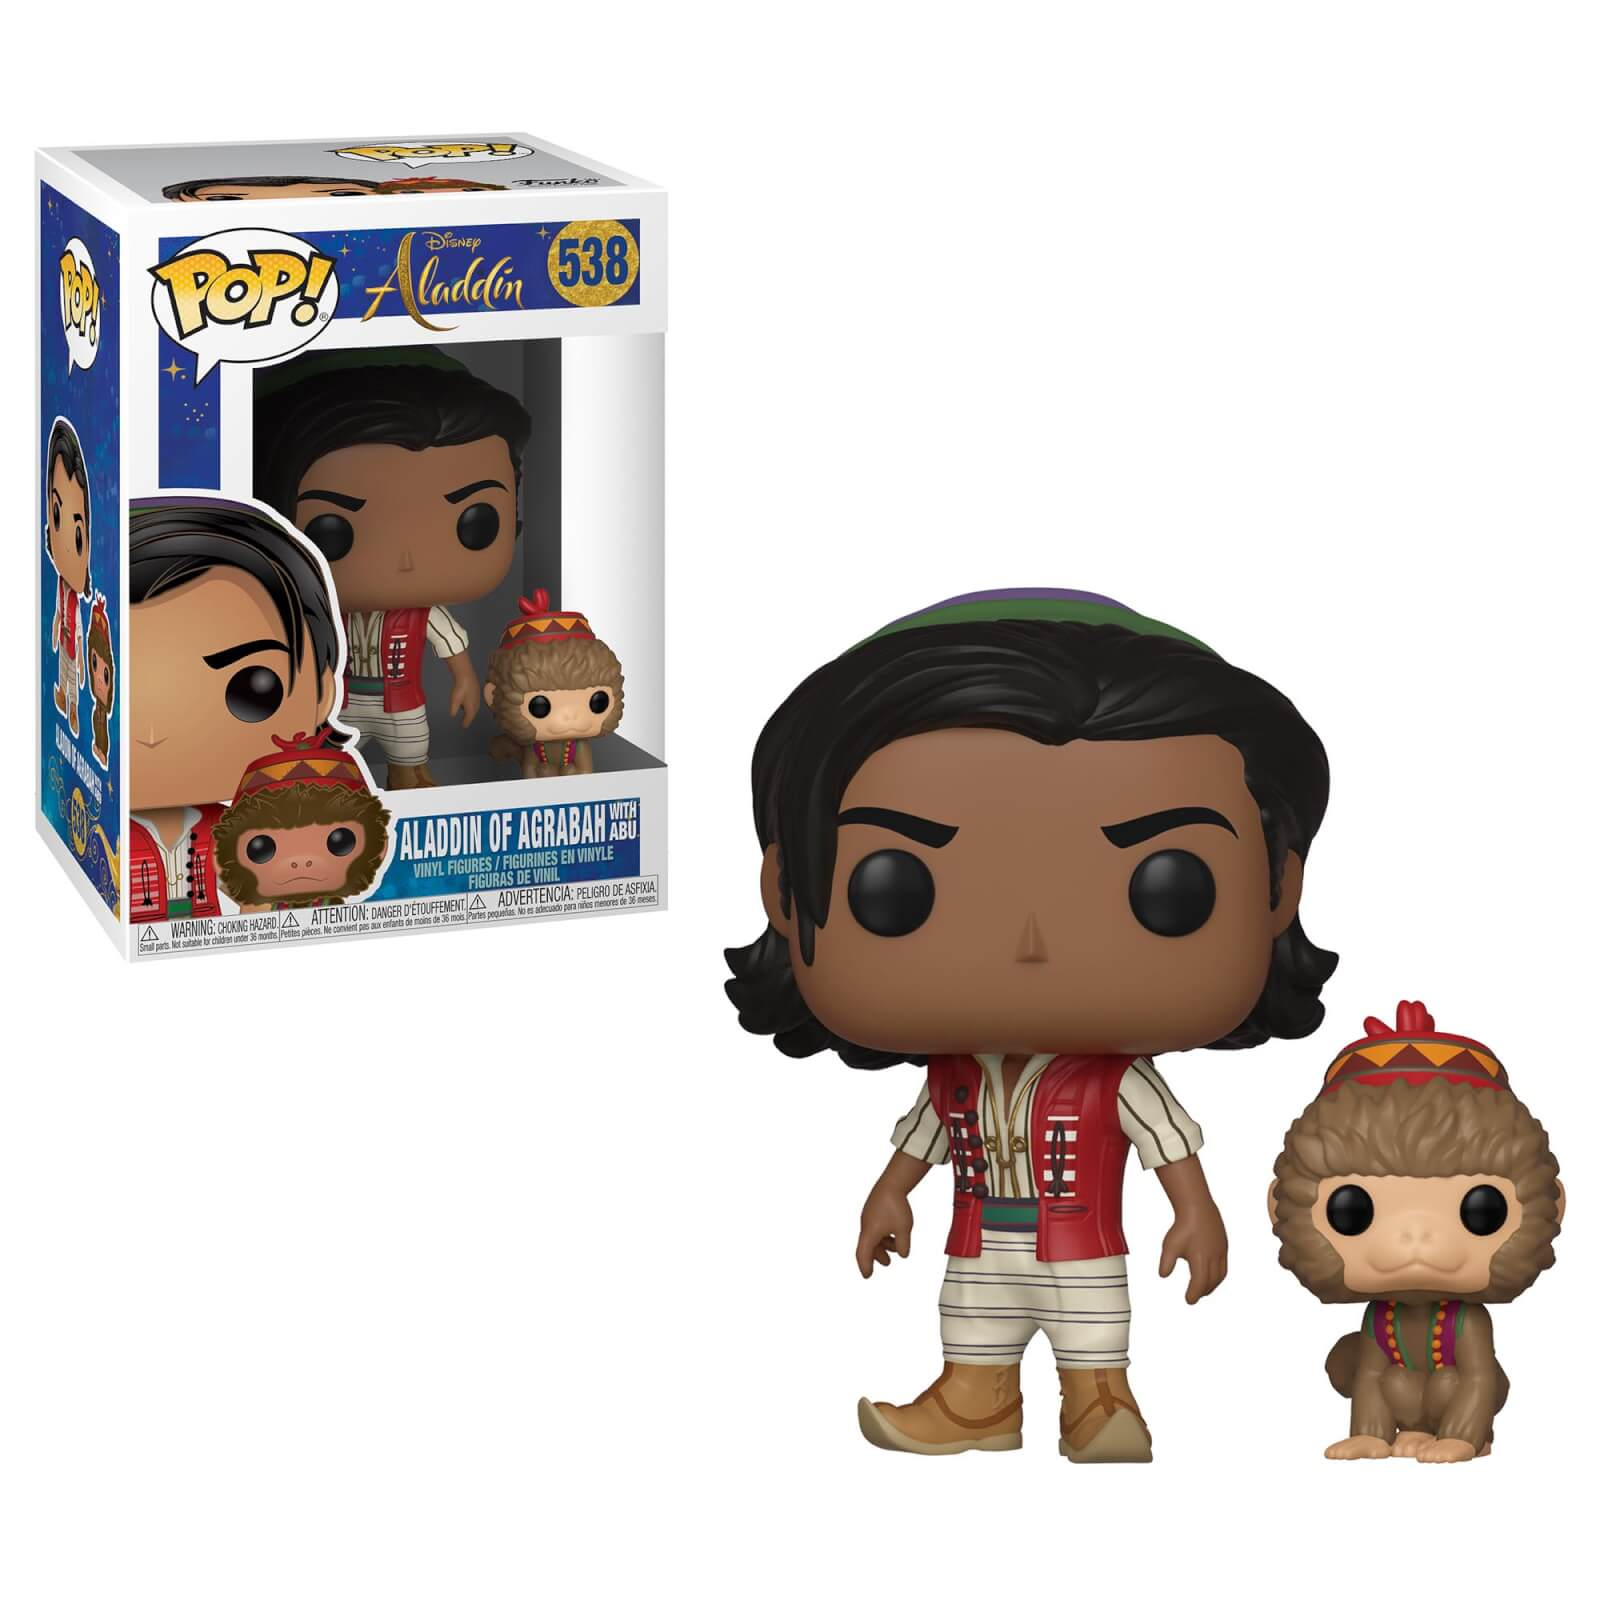 Aladdin Abu Png Disney Aladdin Live Action Aladdin With Abu Pop Vinyl Figure